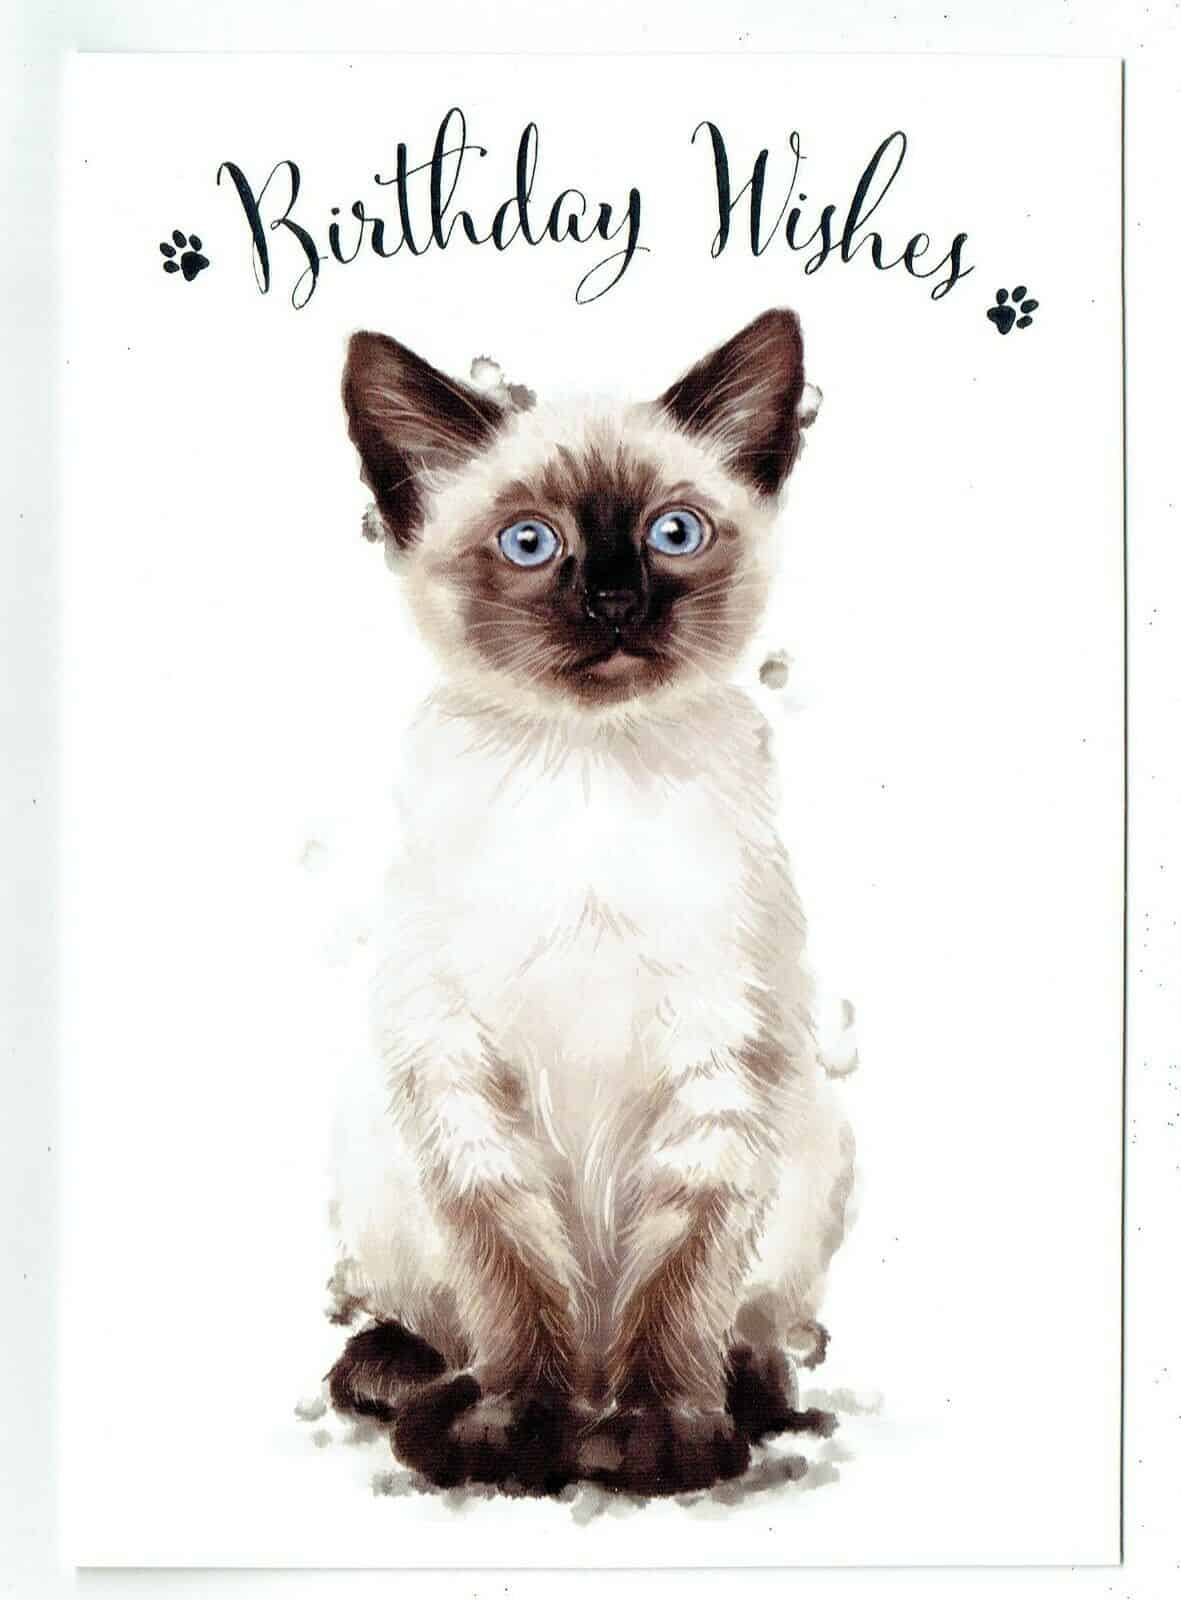 General Birthday Card With Cute Cat Design BIRTHDAY